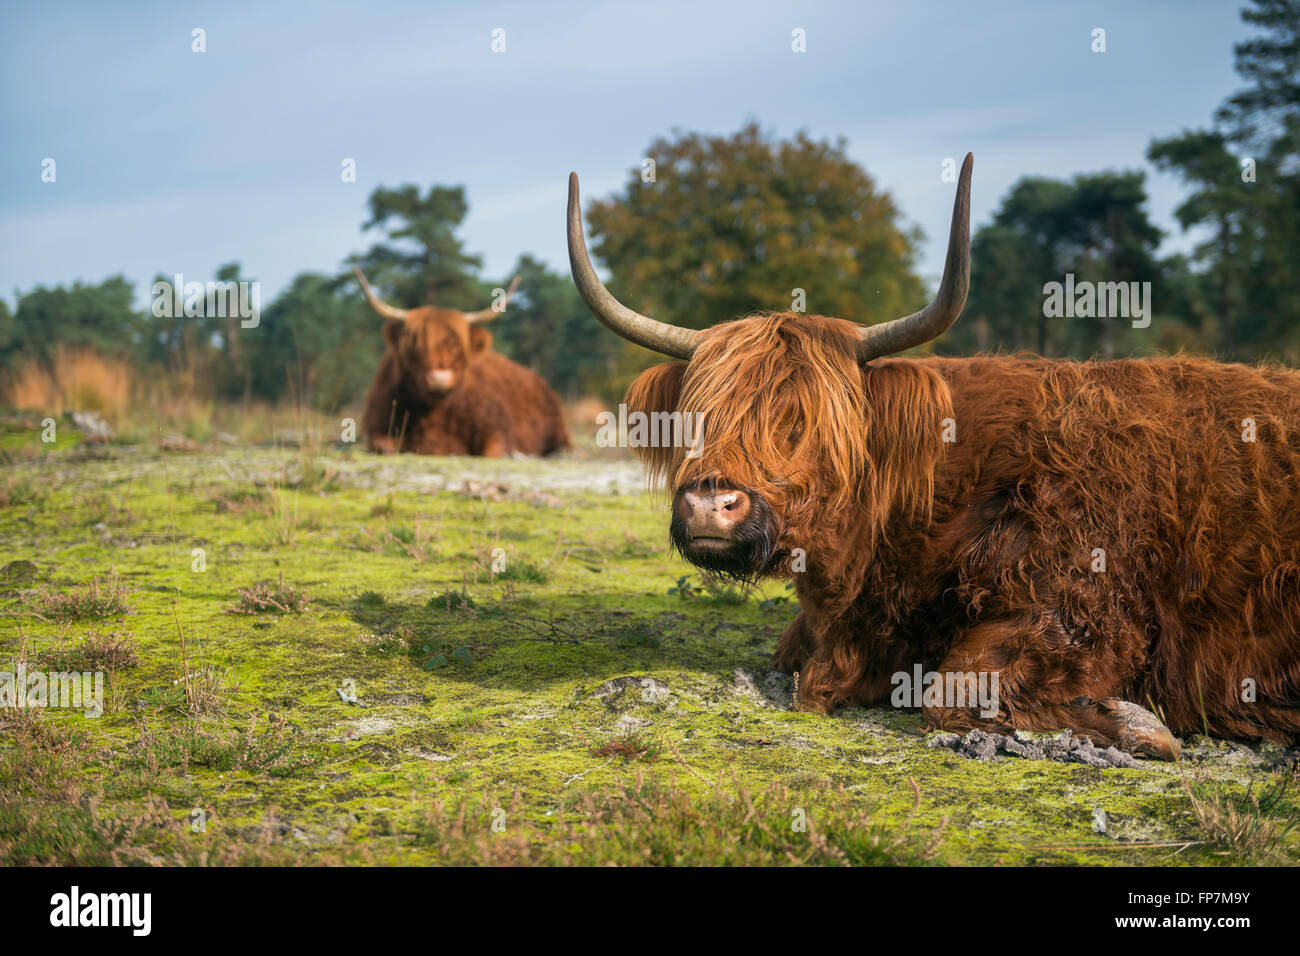 Highland Cattles / Schottische Hochlandrinder ( Bos primigenius taurus ) lying on the ground in typical surrounding. Stock Photo